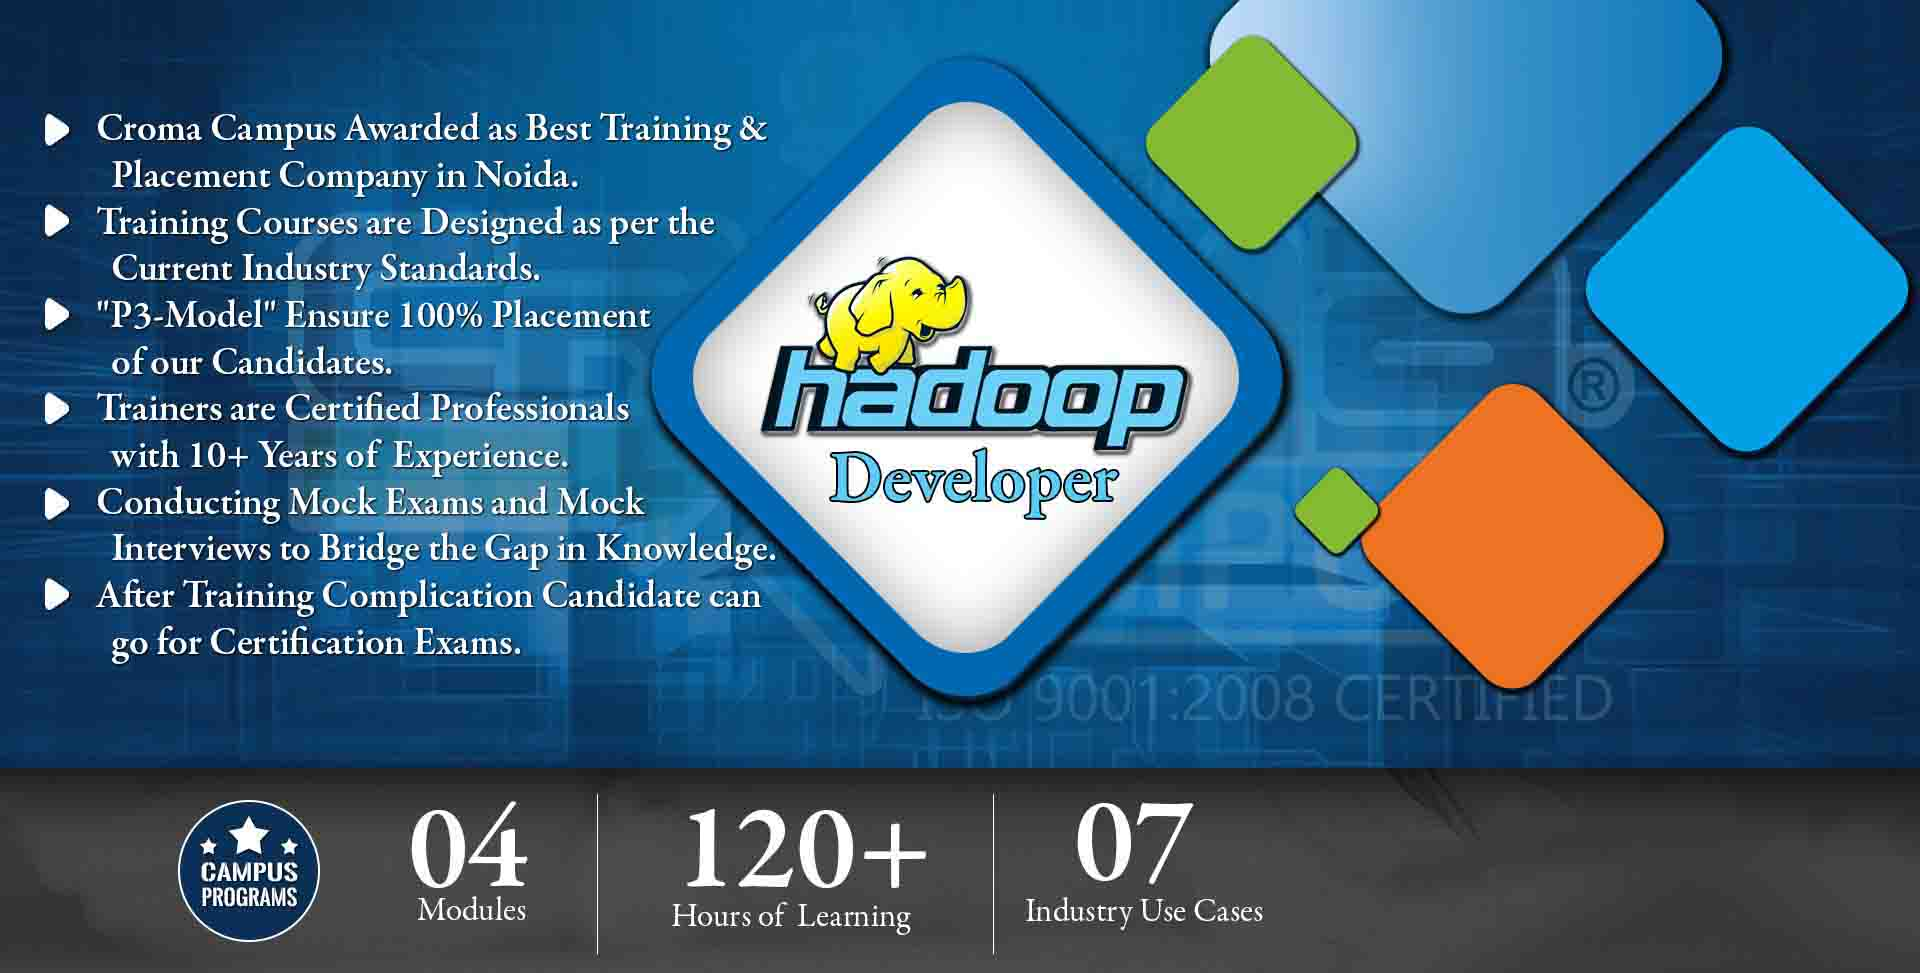 Hadoop Developer Training in Delhi NCR- Croma Campus